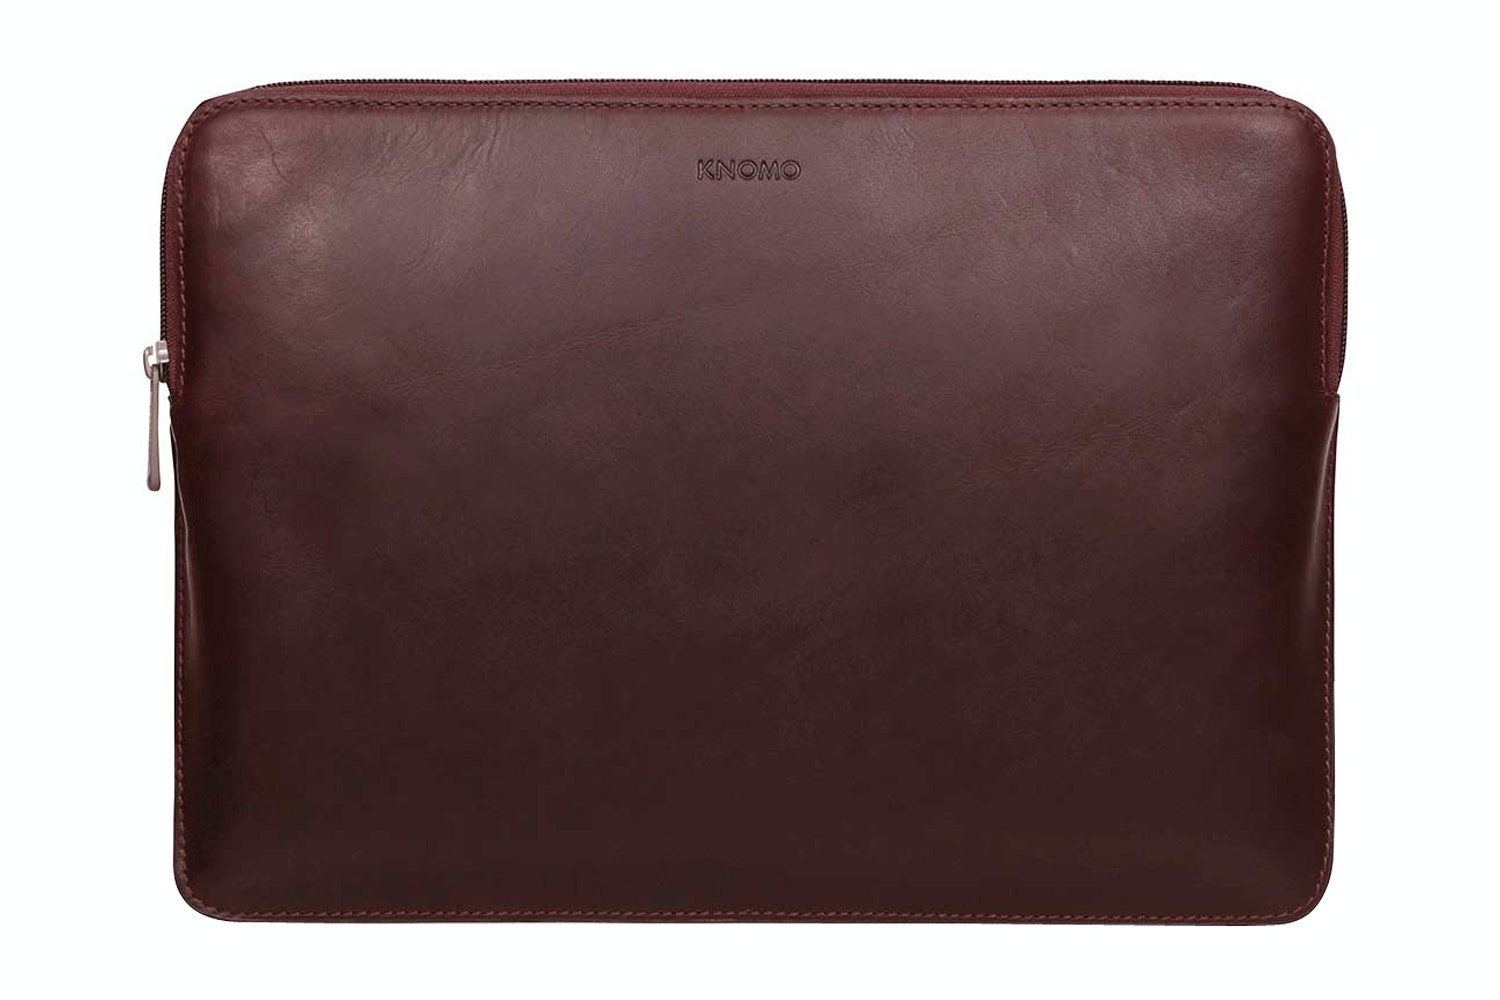 "Knomo Barbican 13"" Laptop Sleeve 